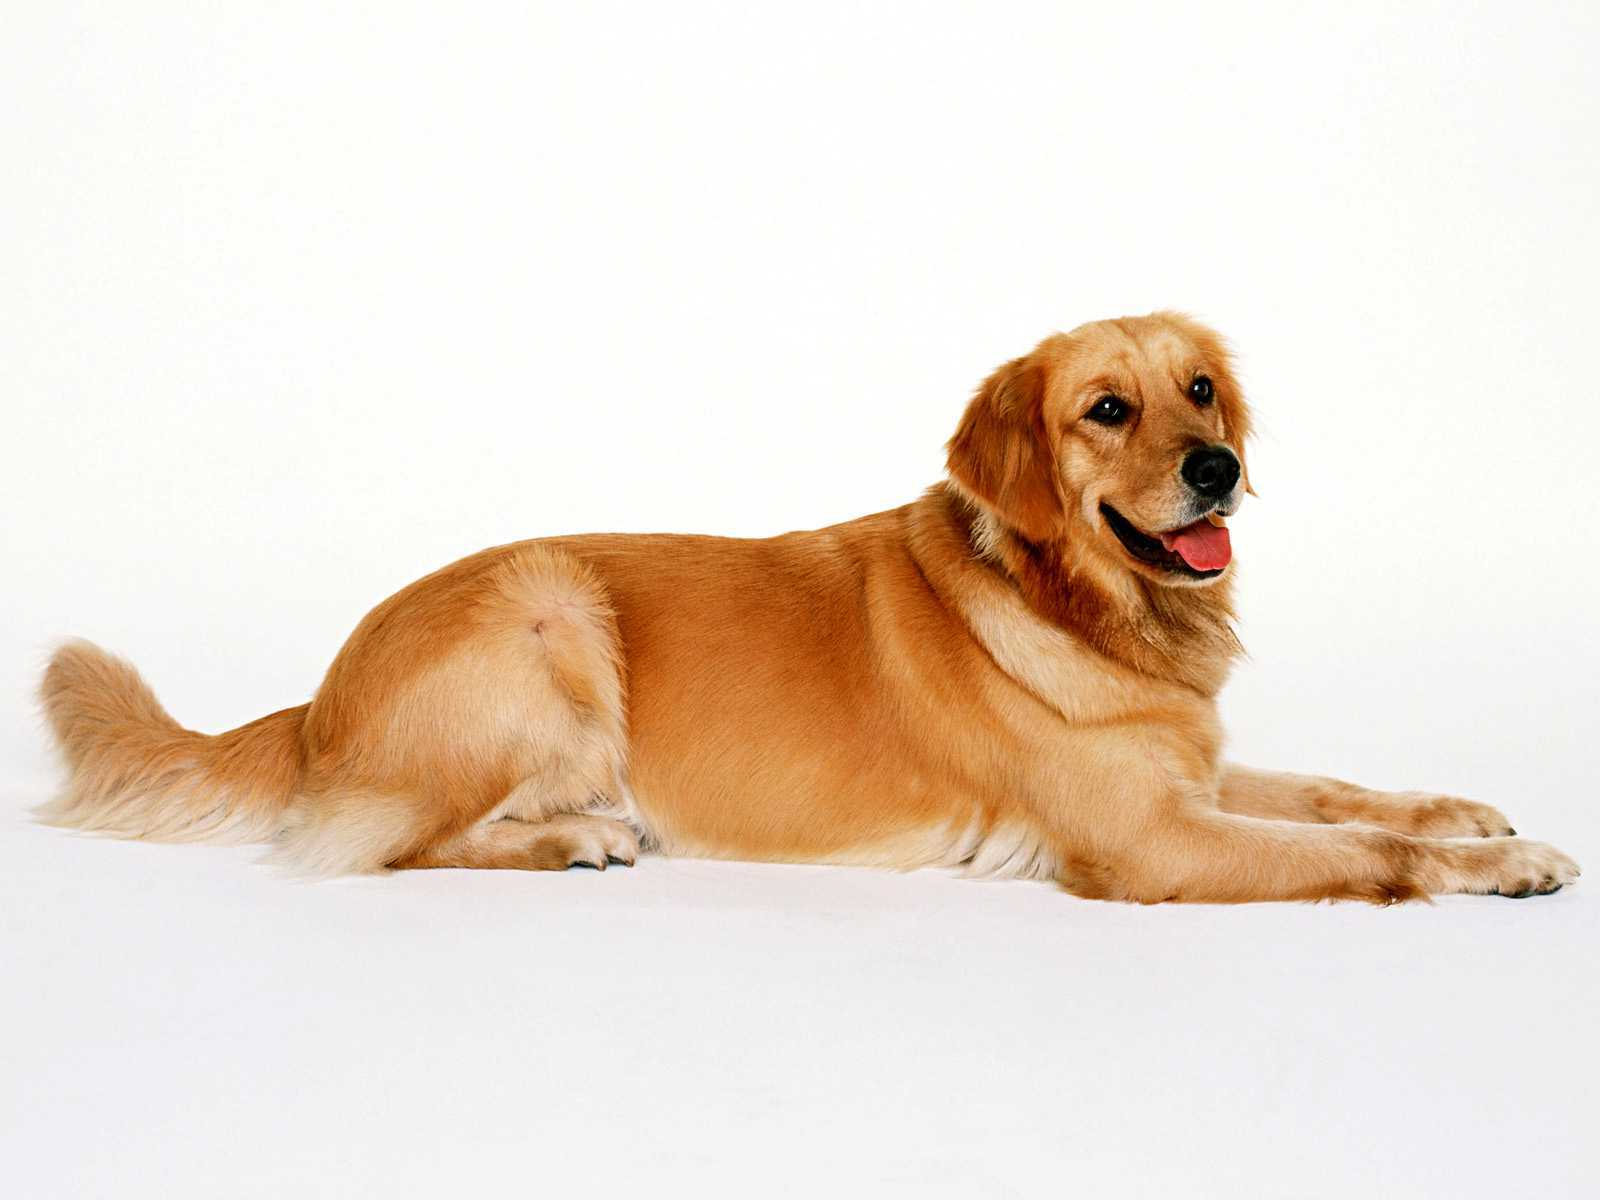 Golden Retriever Wallpaper Hd High Definition Wallpapers Idqum Xp